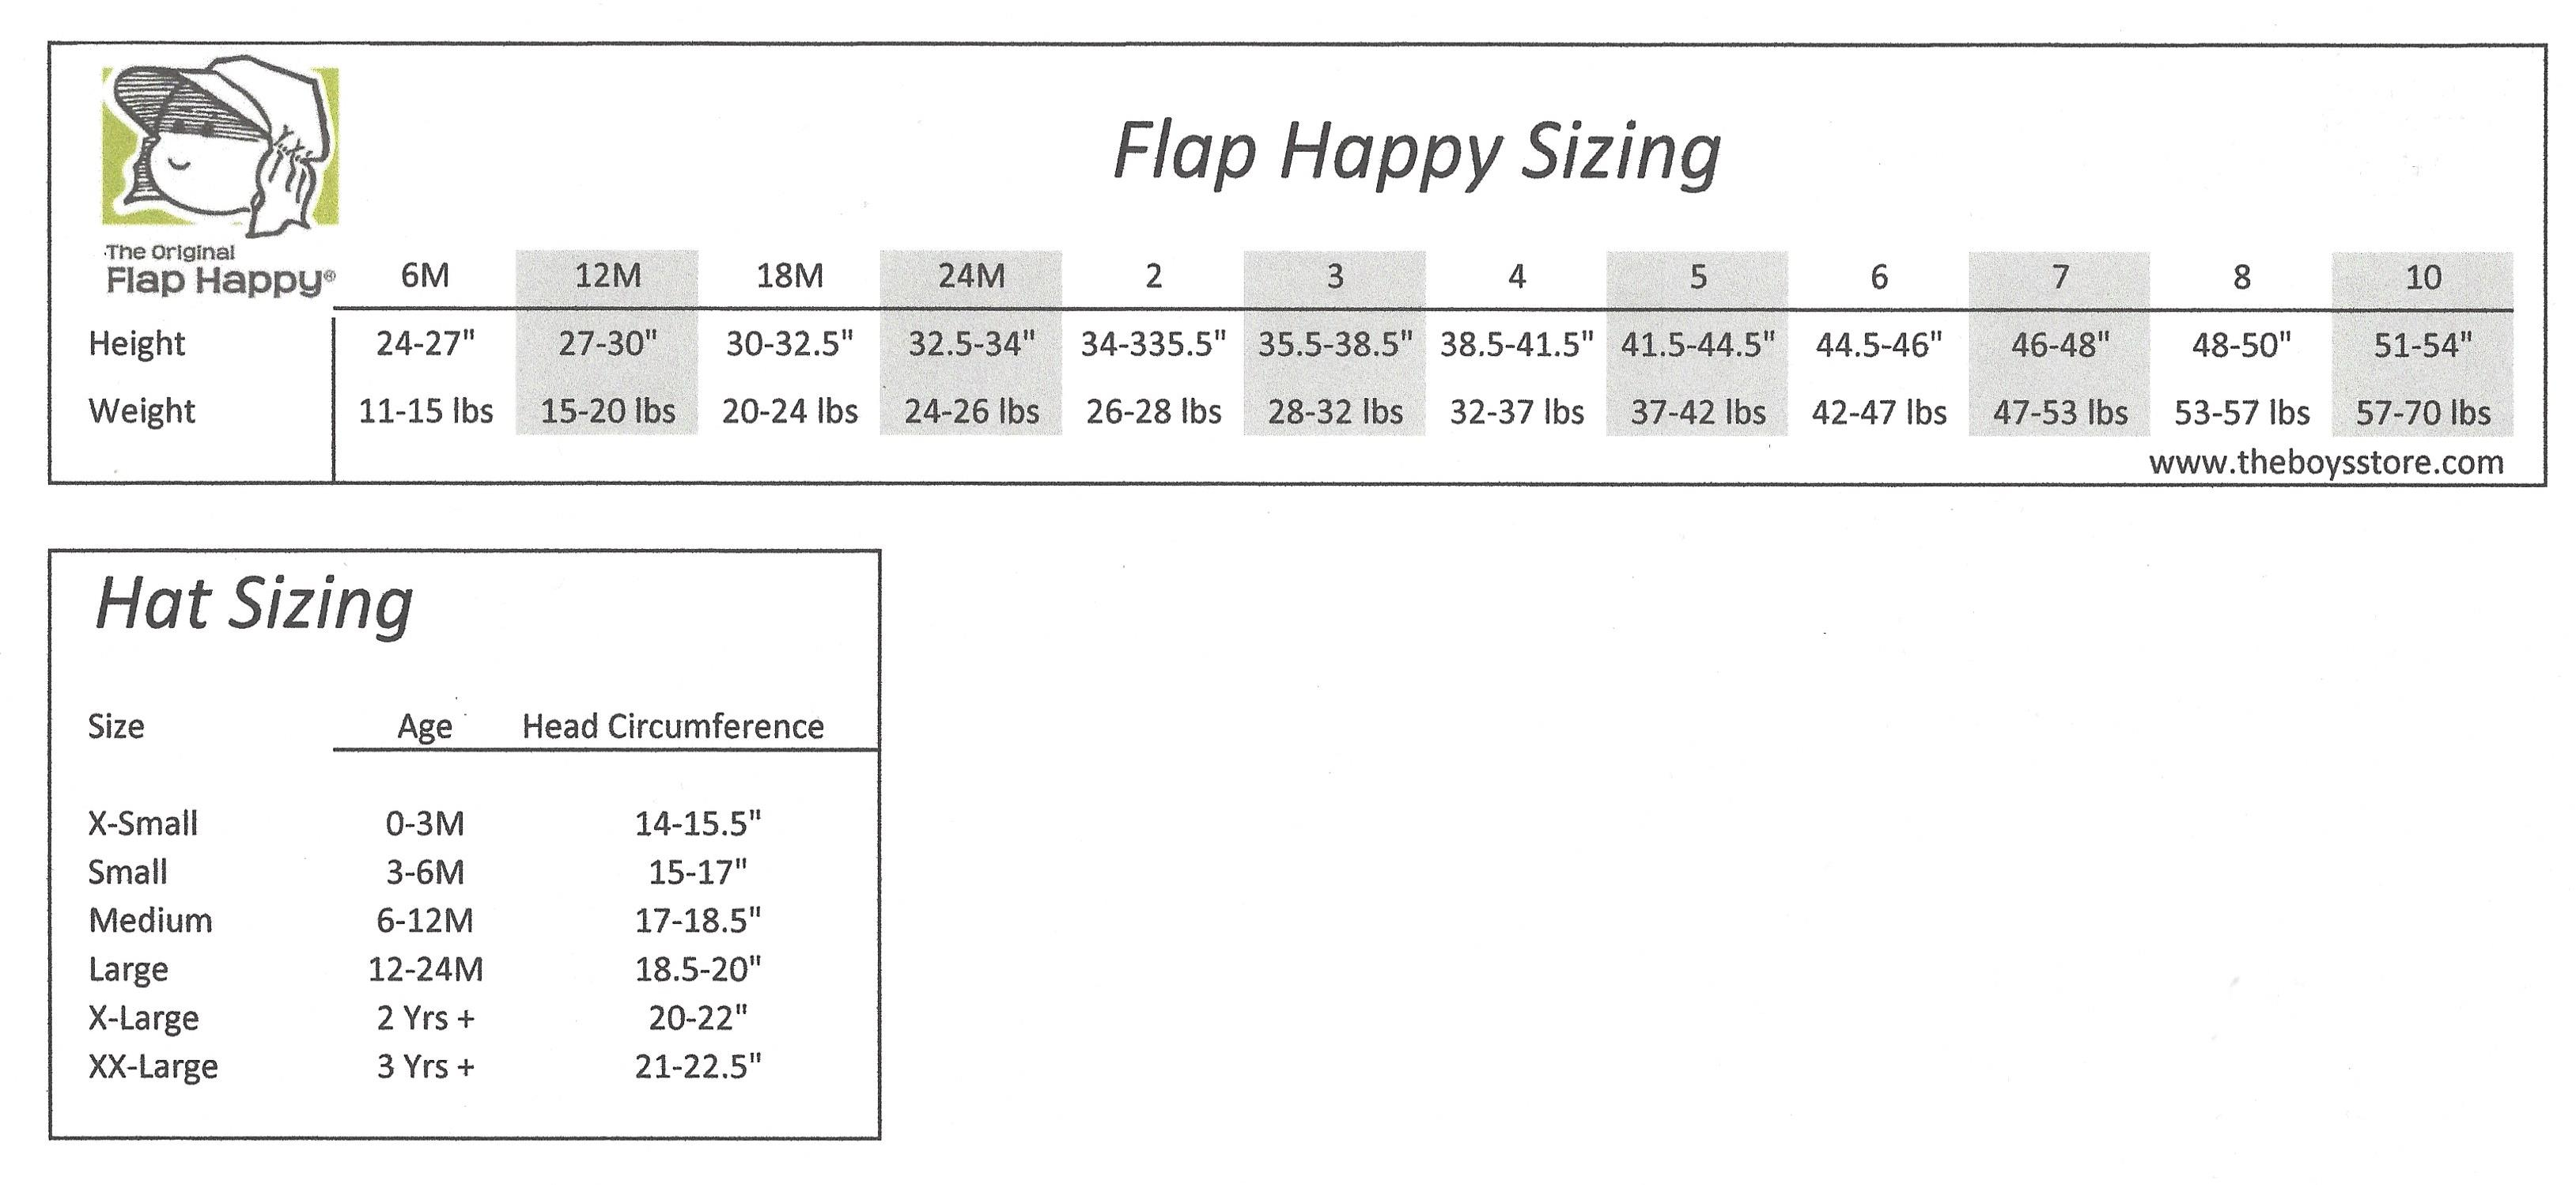 Flap Happy Sizing Chart